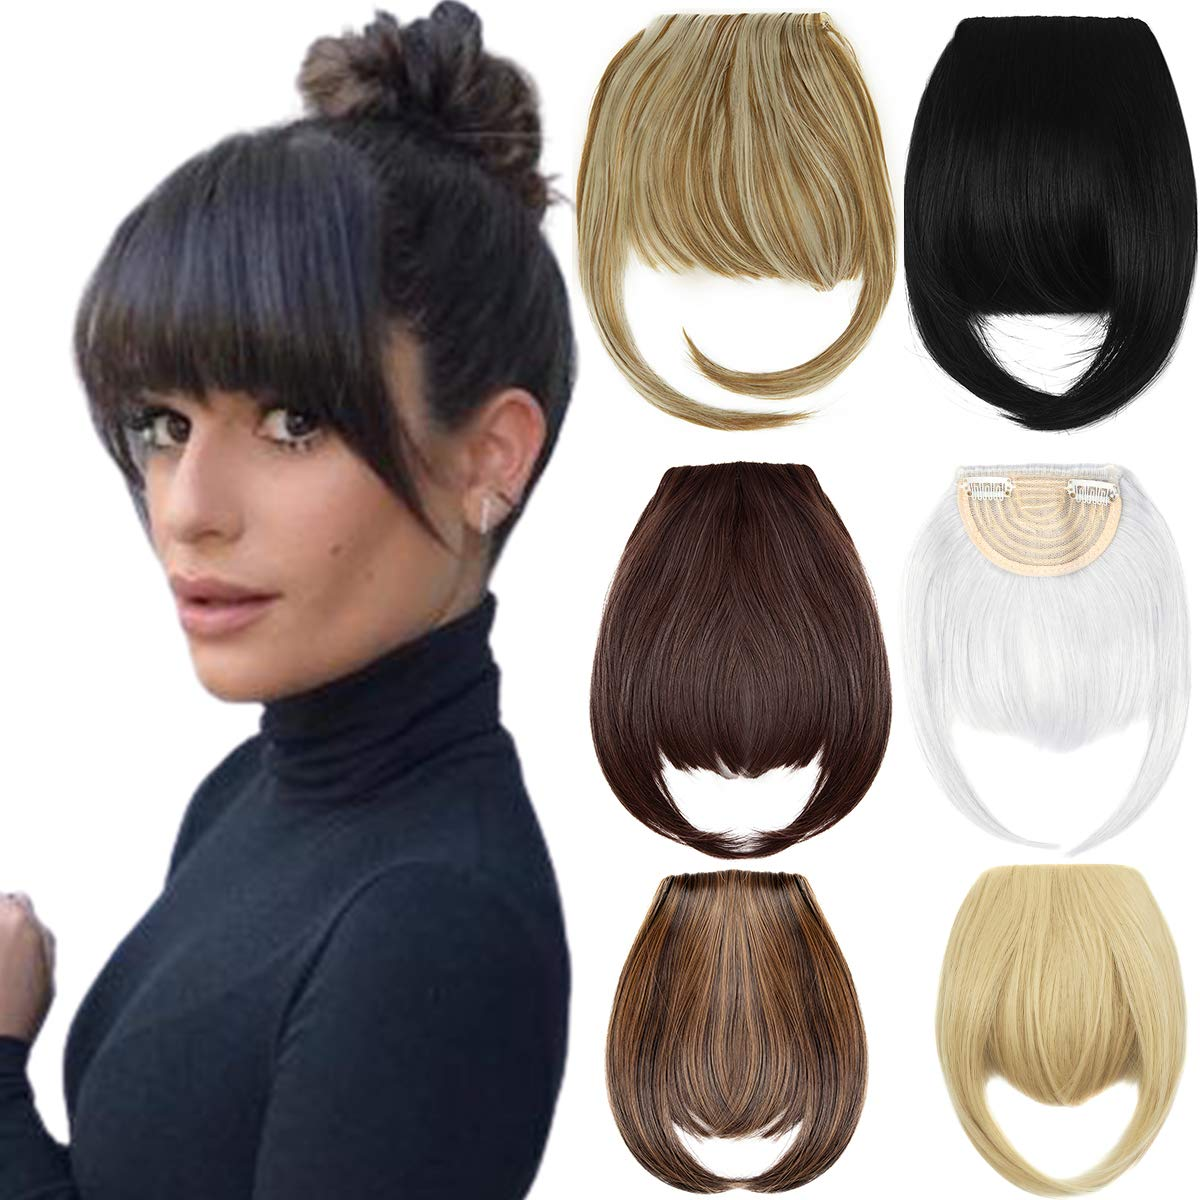 "12"" Clip in Bangs Hair Extensions Thick Full Neat Bangs Fringe Hair  Extension with Temples One Piece Clip on Front Bangs Hairpiece"